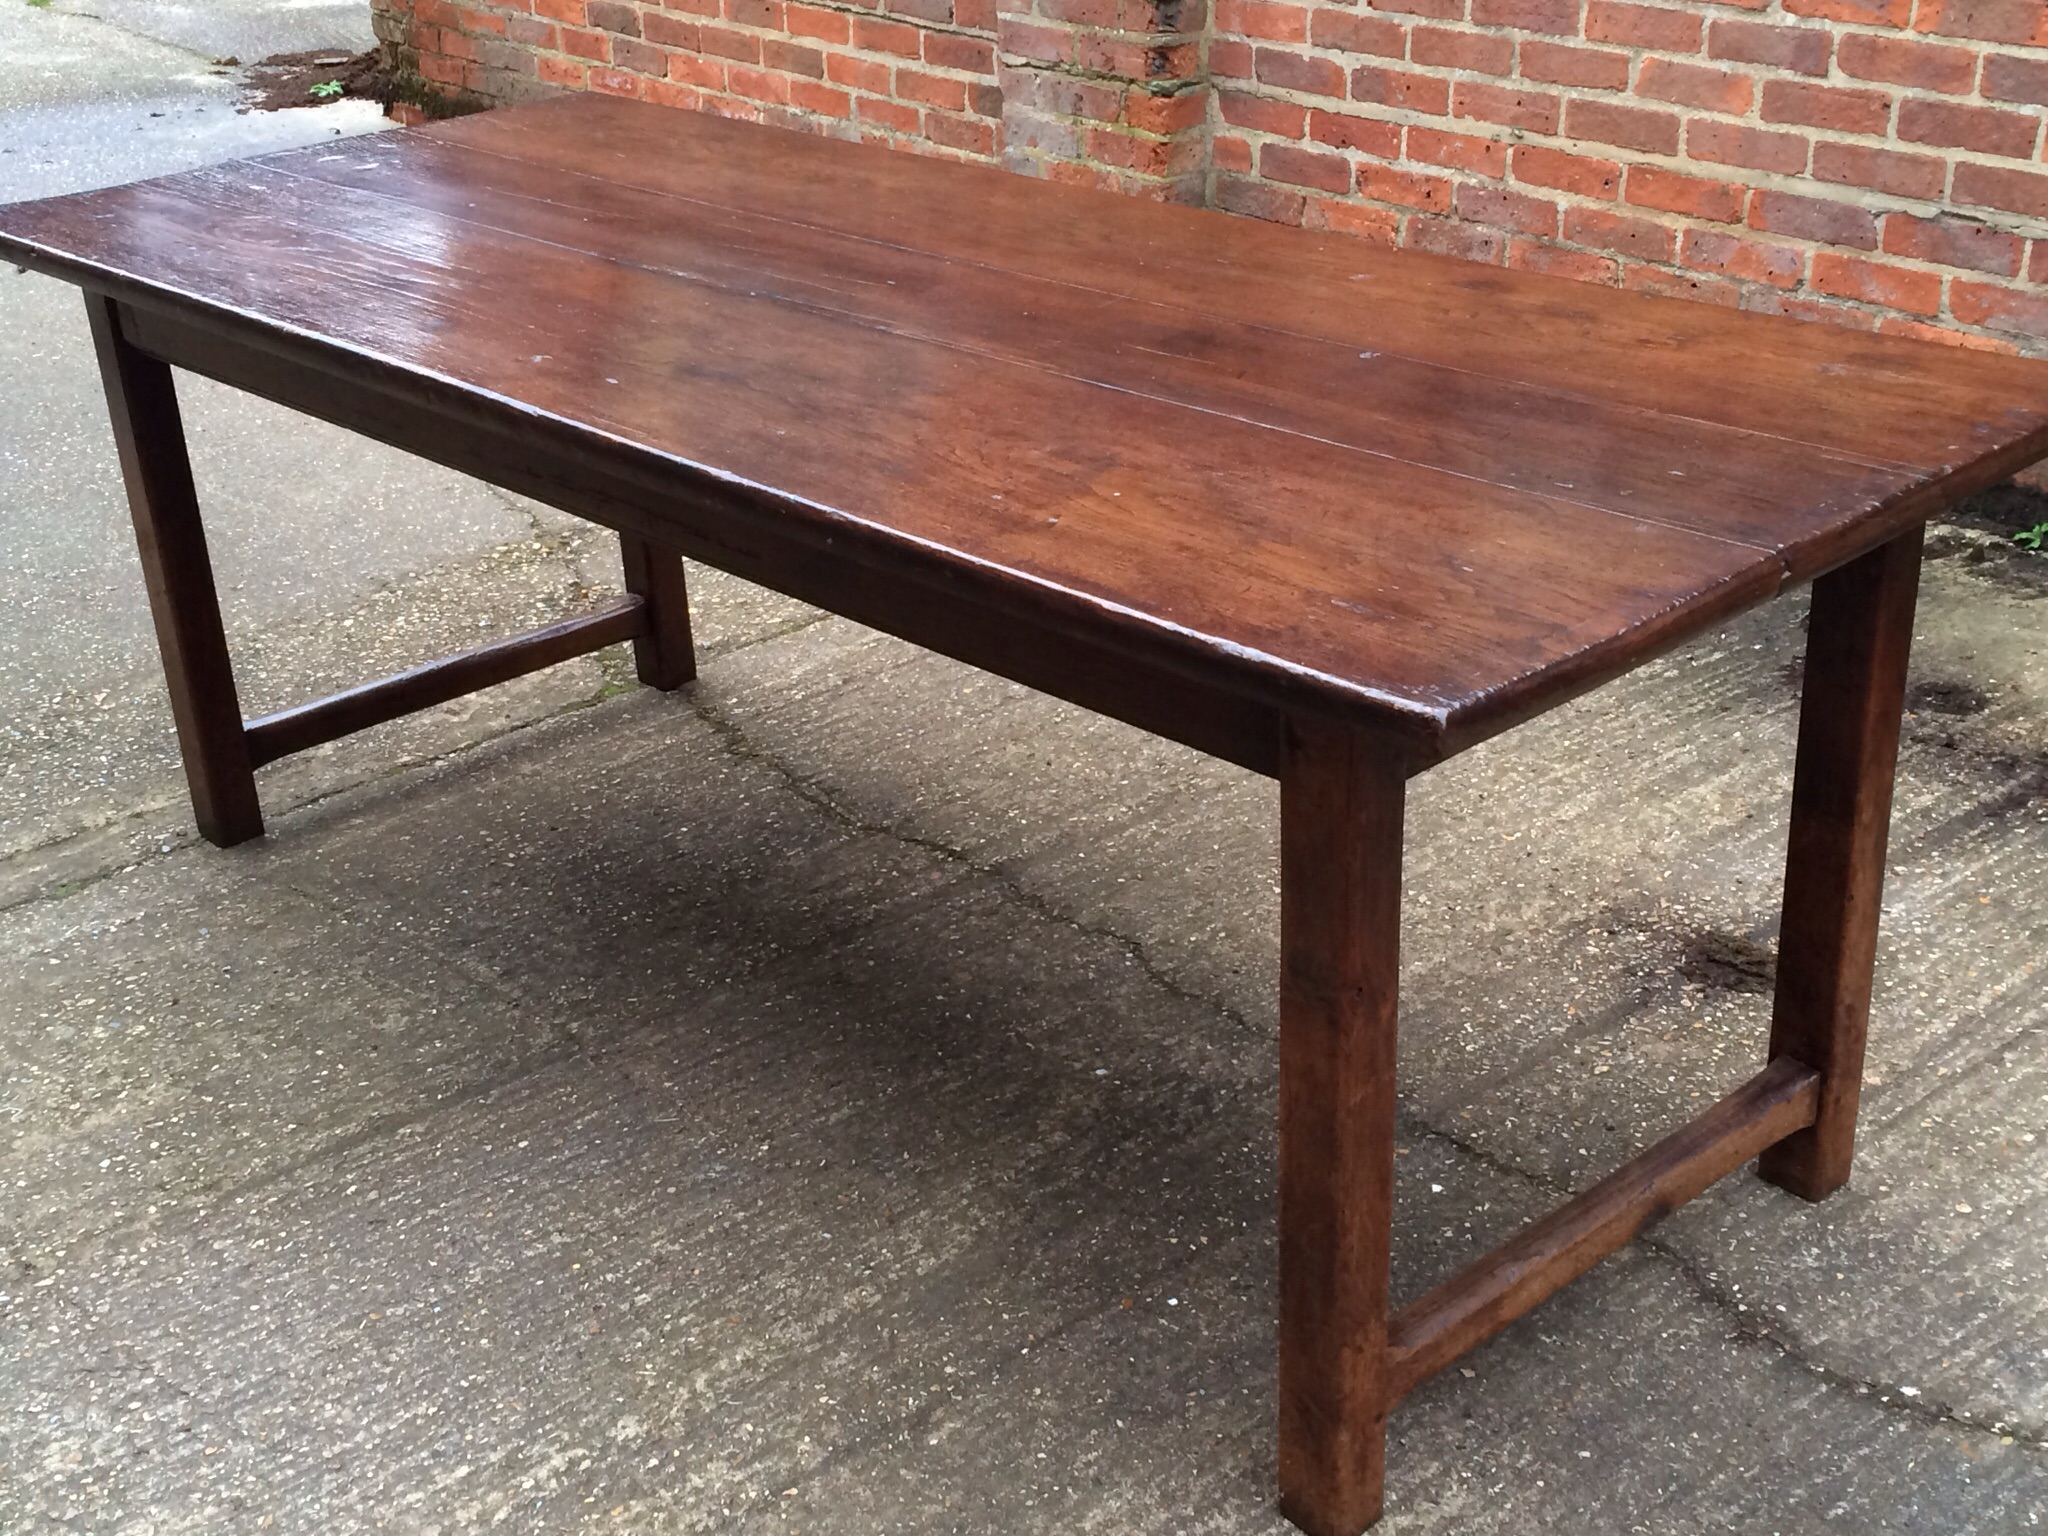 Lovely antique oak French farmhouse table